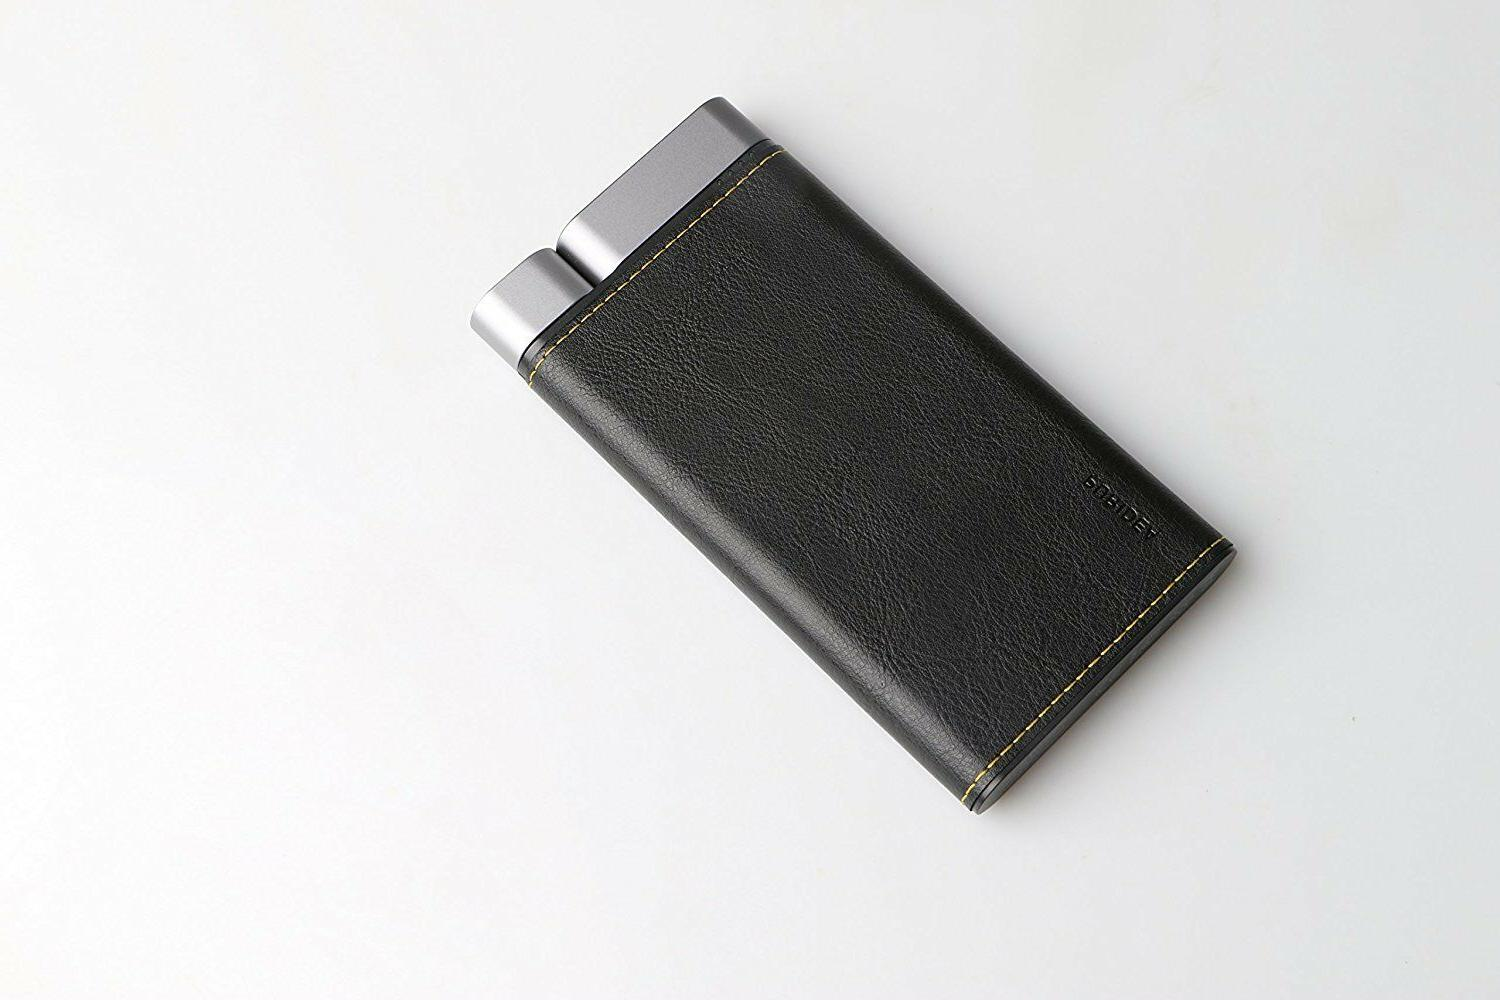 Puridea X01 mAh Leather Dual Charger Battery